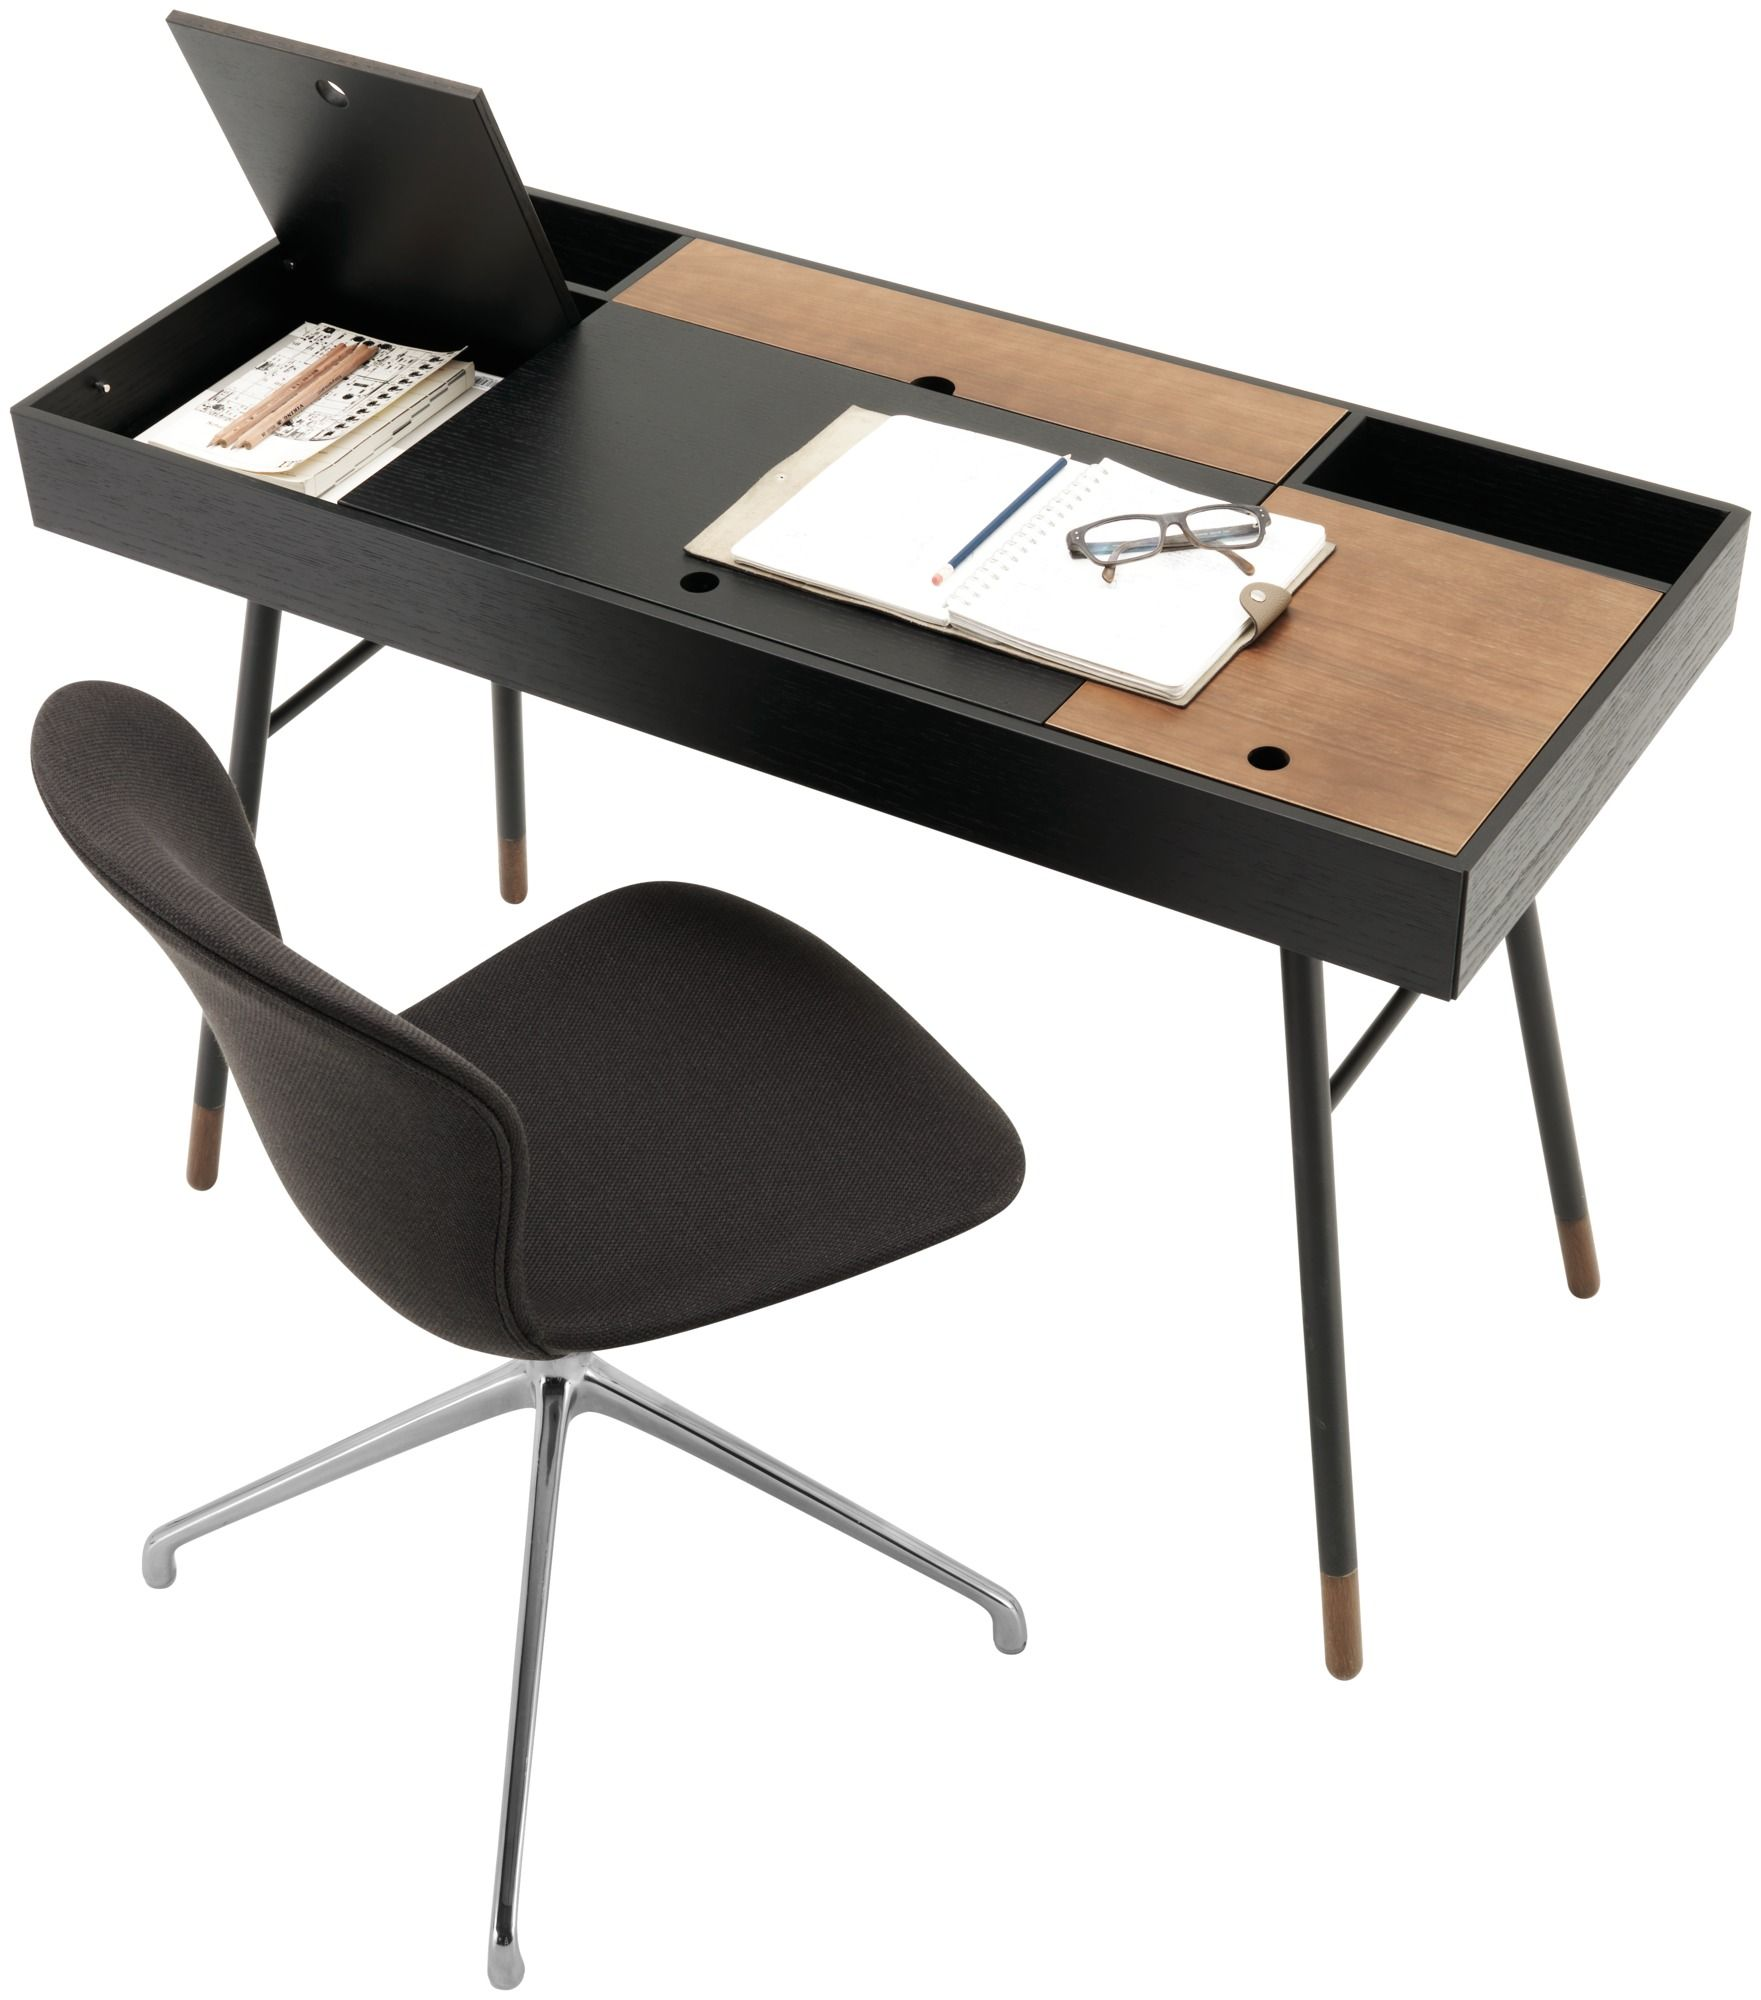 Desks Cupertino desk | Stylish office furniture